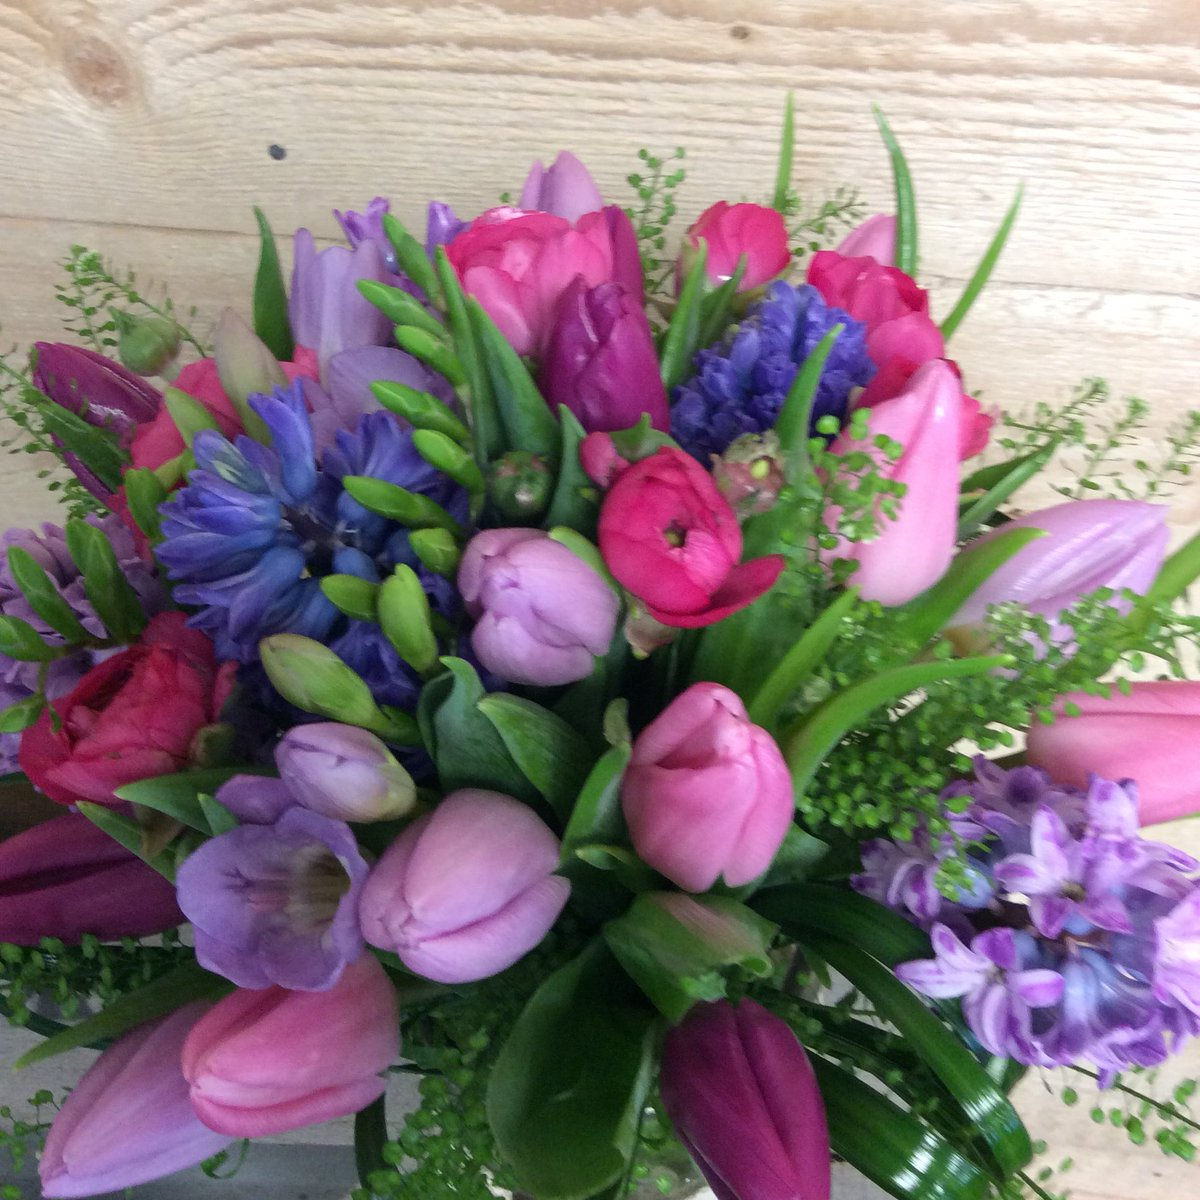 Heather groves heathermgroves twitter whats your favourite spring flower spring flower love florist swindon hyacinth ranunculus tulip daffodil freesia ginesta scentpicitter izmirmasajfo